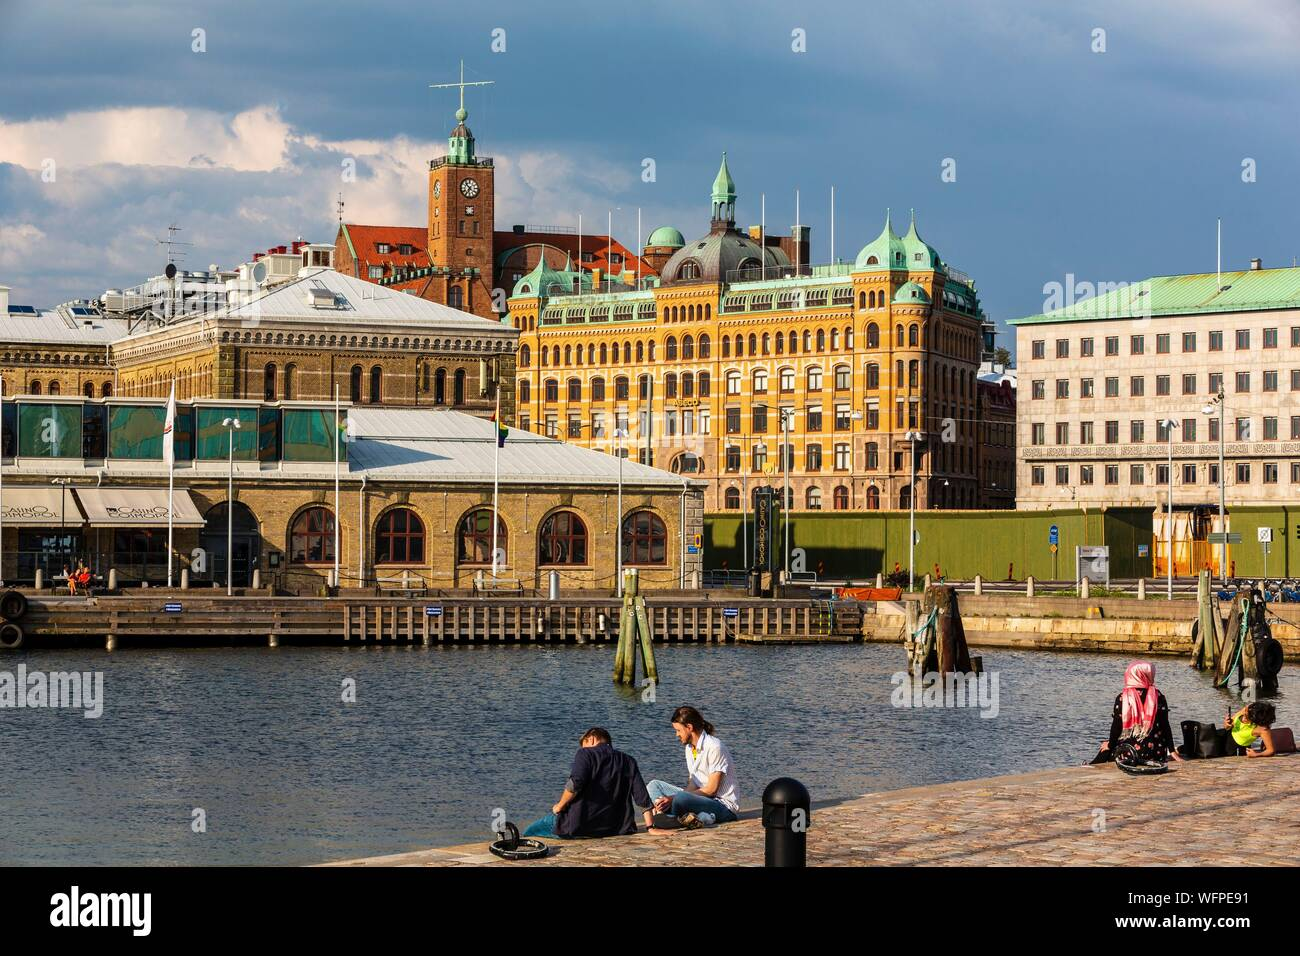 Sweden Vastra Gotaland Goteborg Gothenburg Buildings Of The Company Aseco On Packhusplatsen Facing The Harbor And Kvarnberget And His Clock Stock Photo Alamy